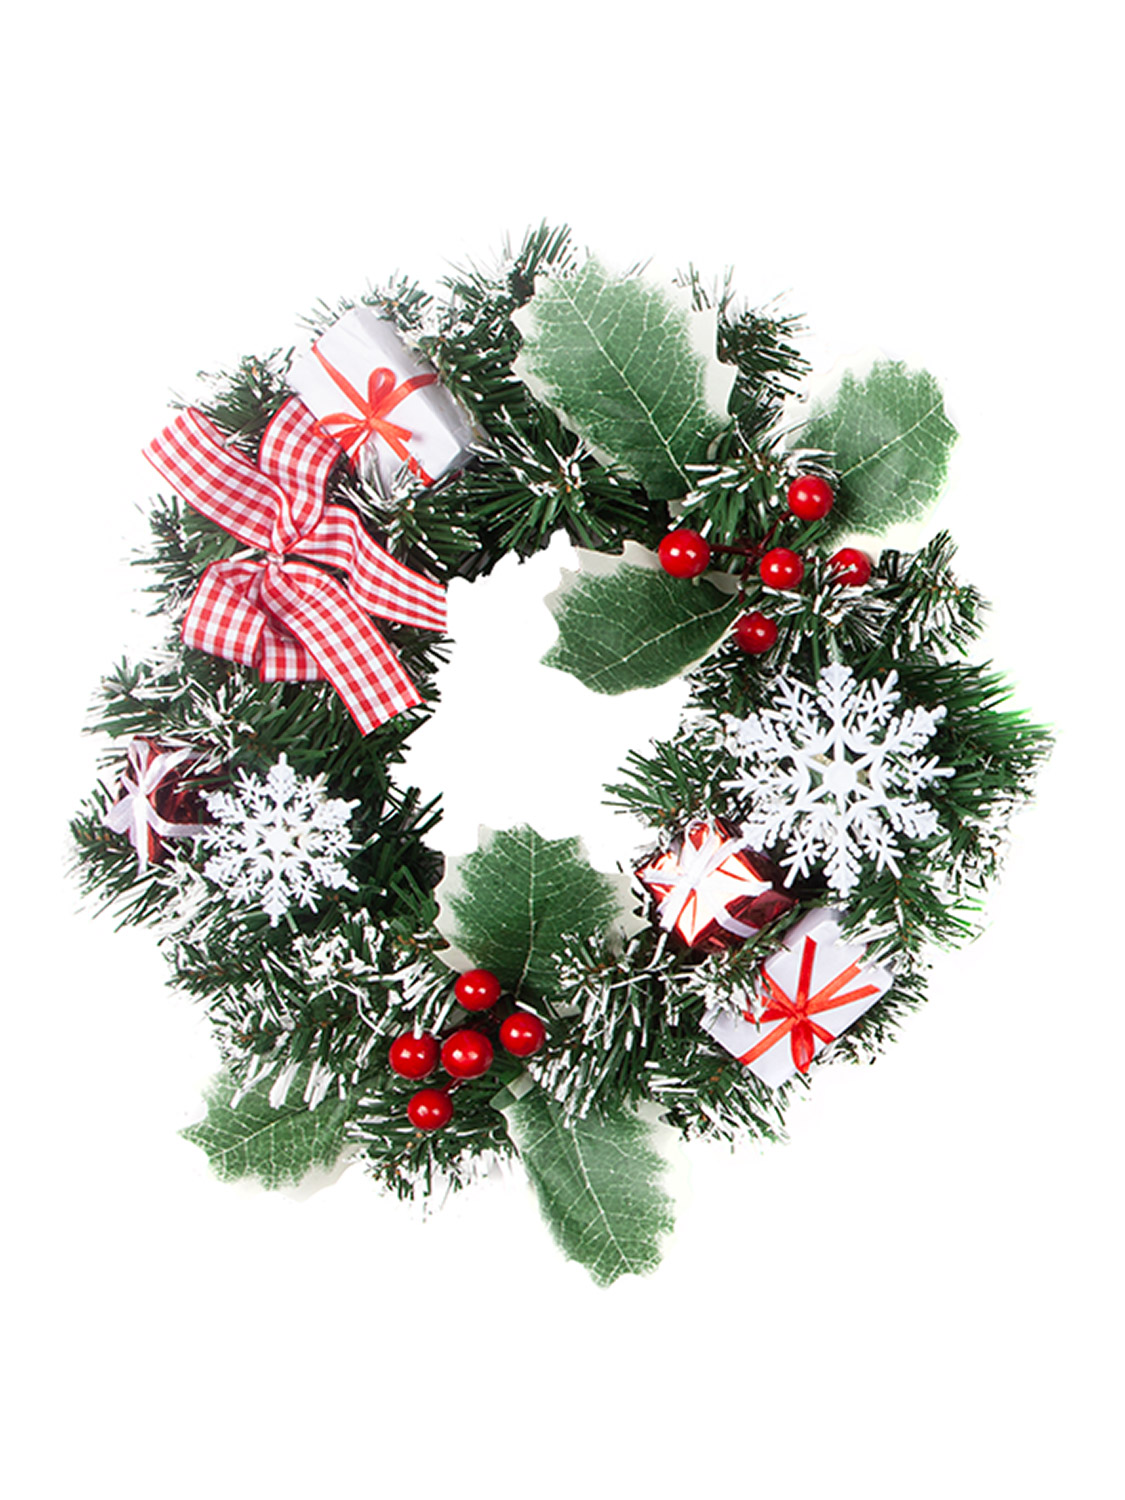 Christmas-Nordic-Wreath-Garland-Swag-Xmas-Scandi-Festive-Door-Mantle-Decoration thumbnail 10